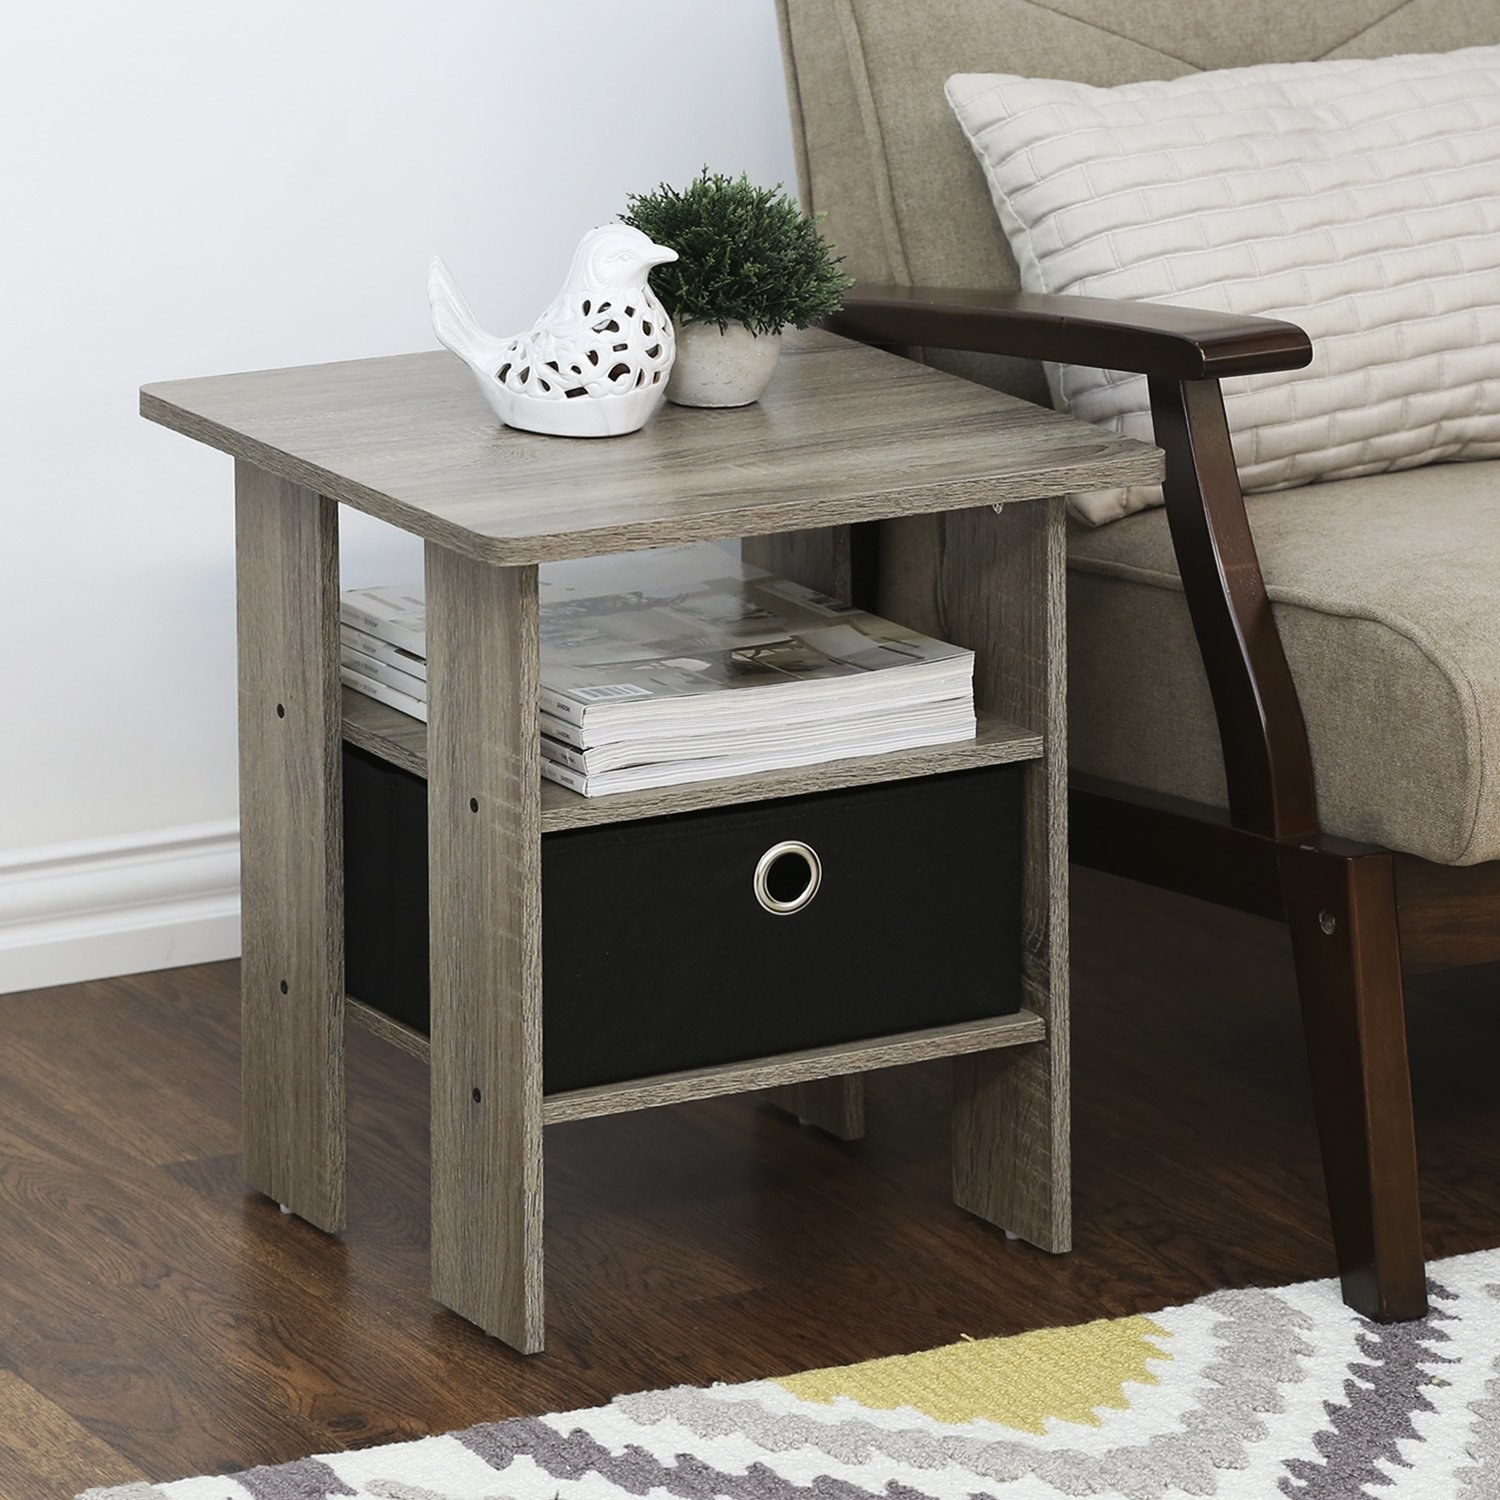 The side table with two shelves and a fabric bin in one shelf